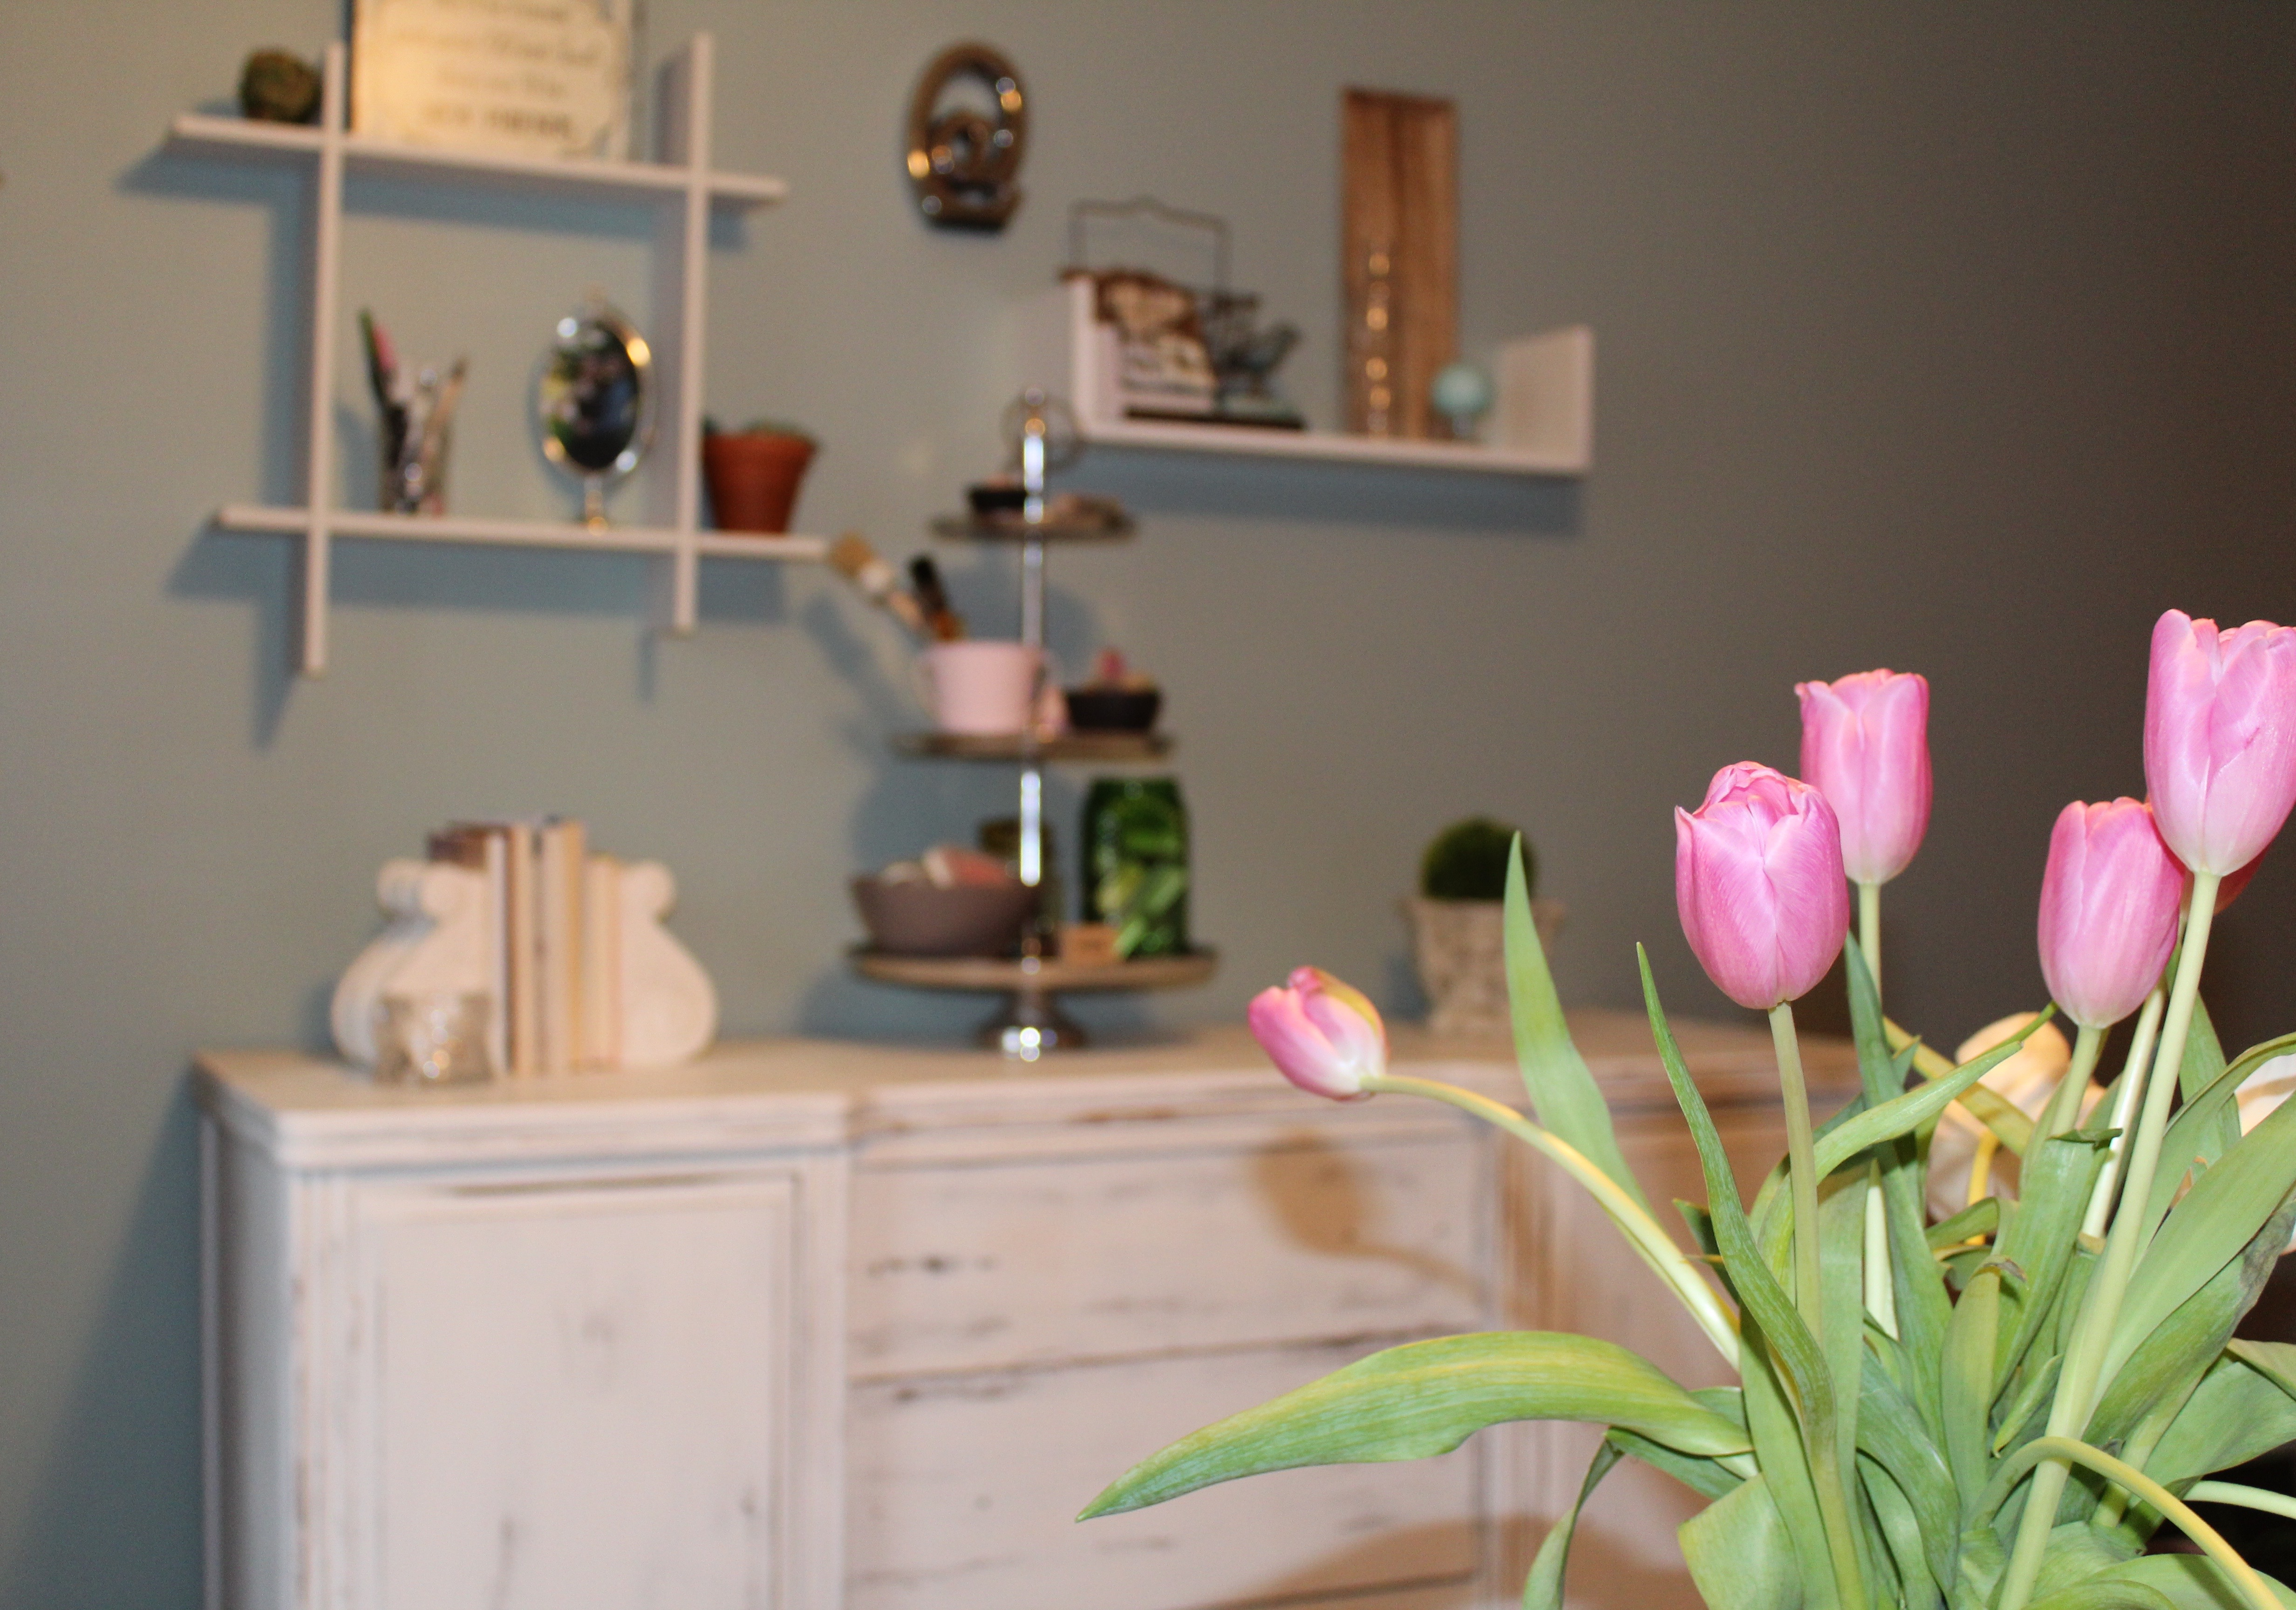 Beginner's Experience with Chalk Paint